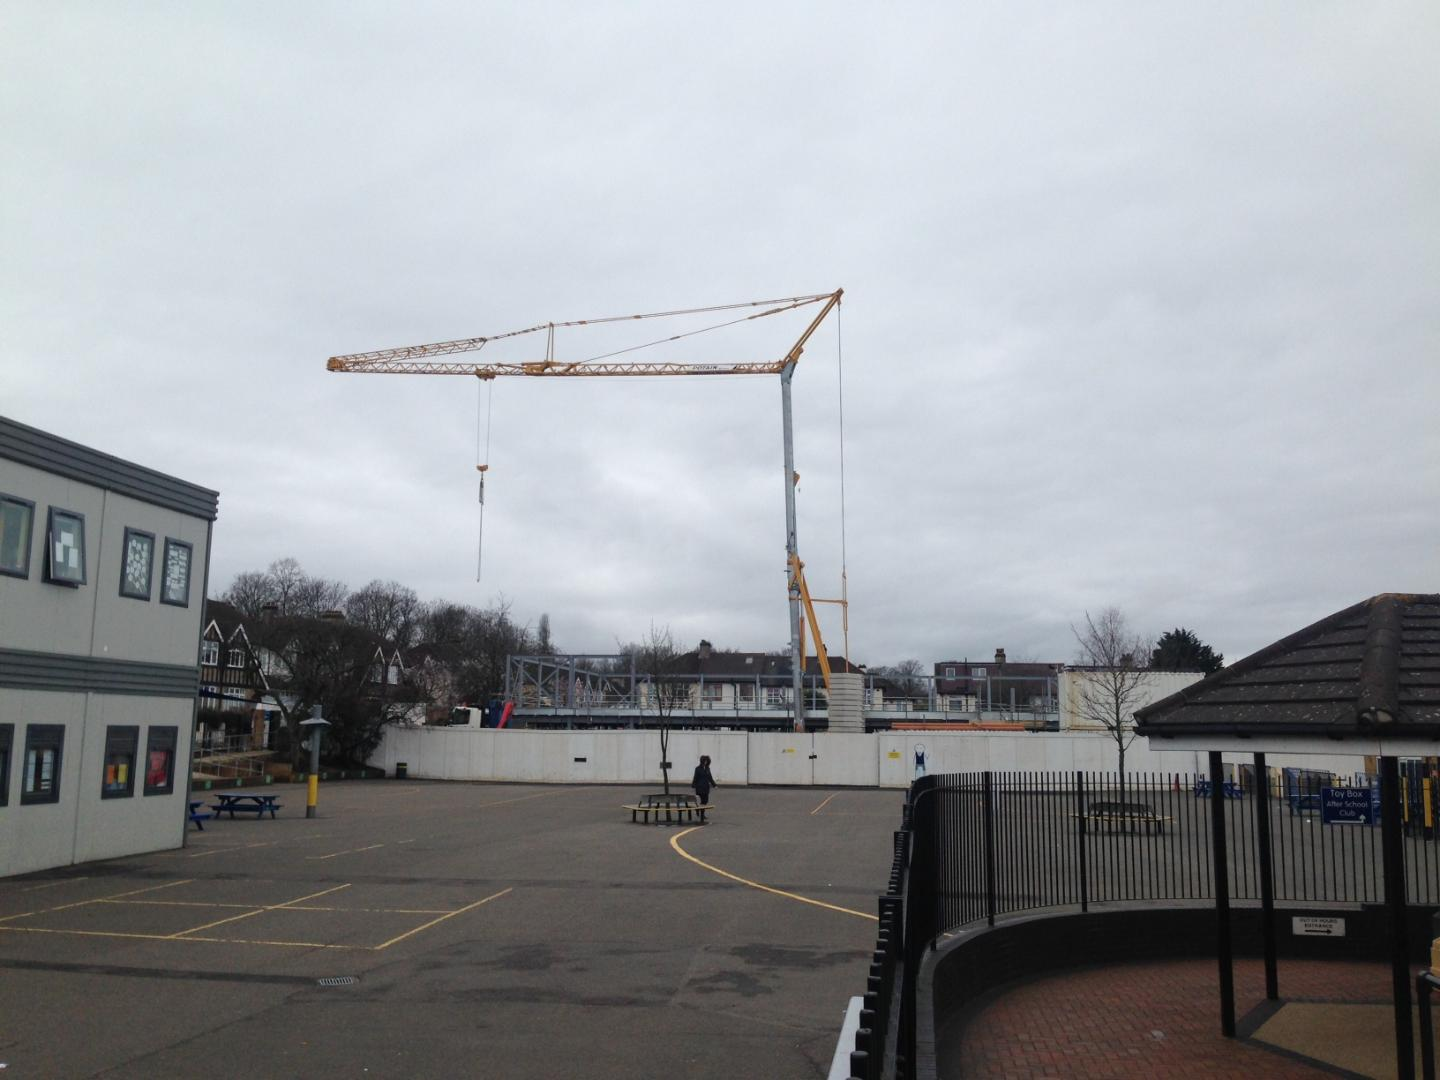 Week 7 - Tower crane erected